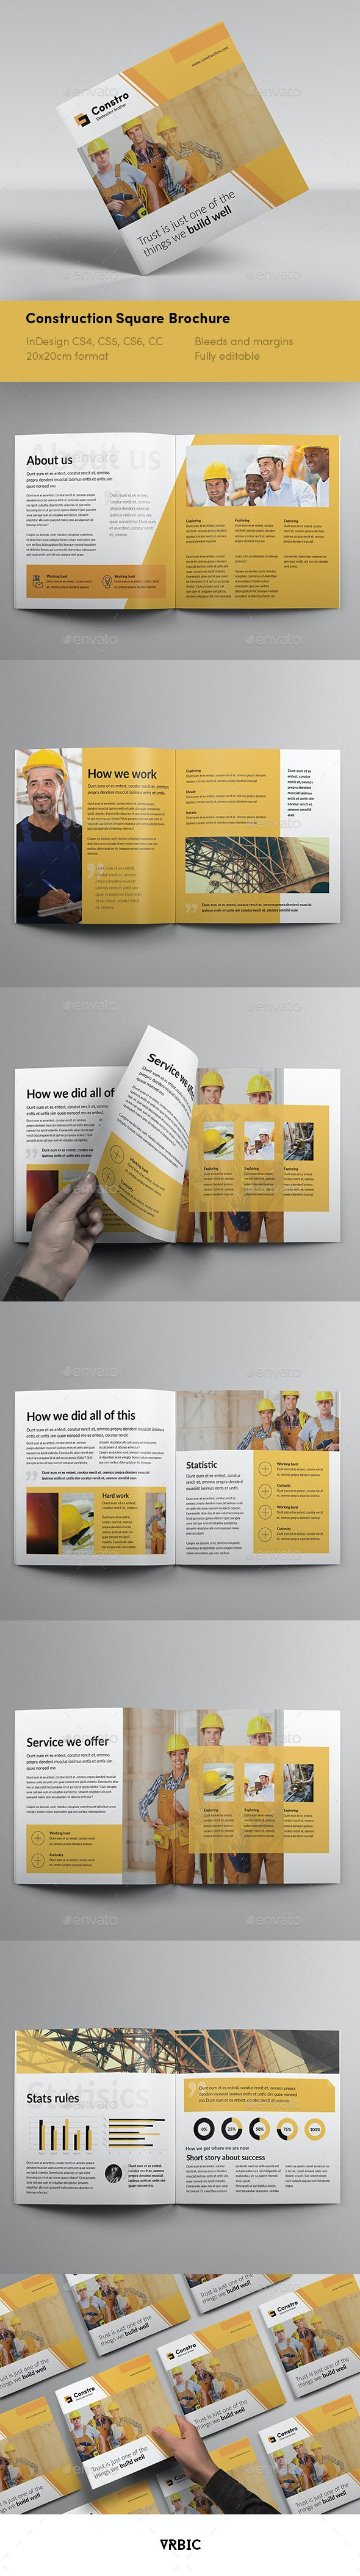 Construction Square Brochure - InDesign Template - Brochures Print Templates